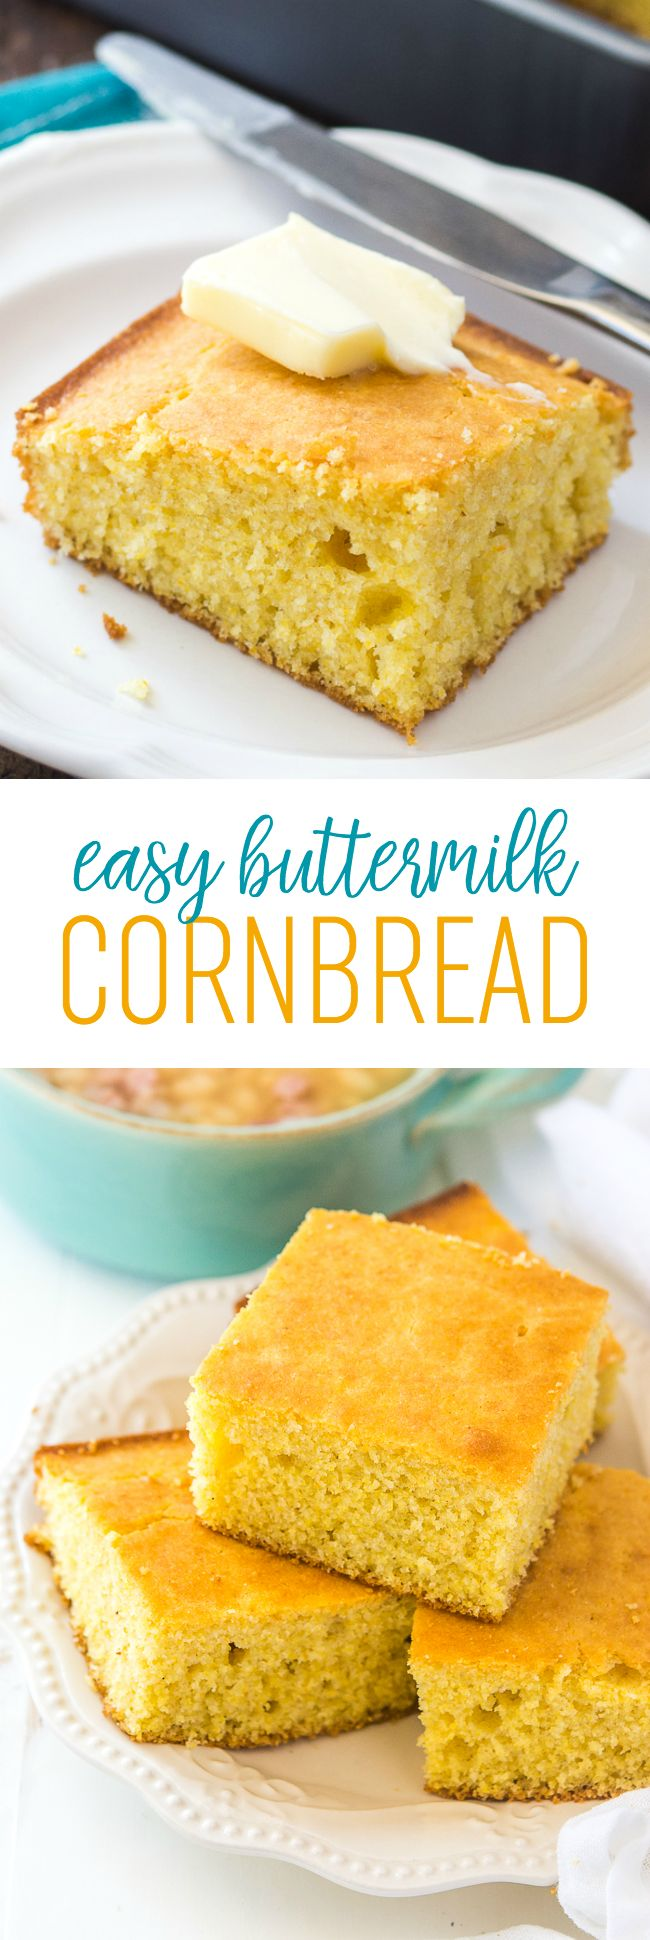 recipe: homemade southern cornbread [11]